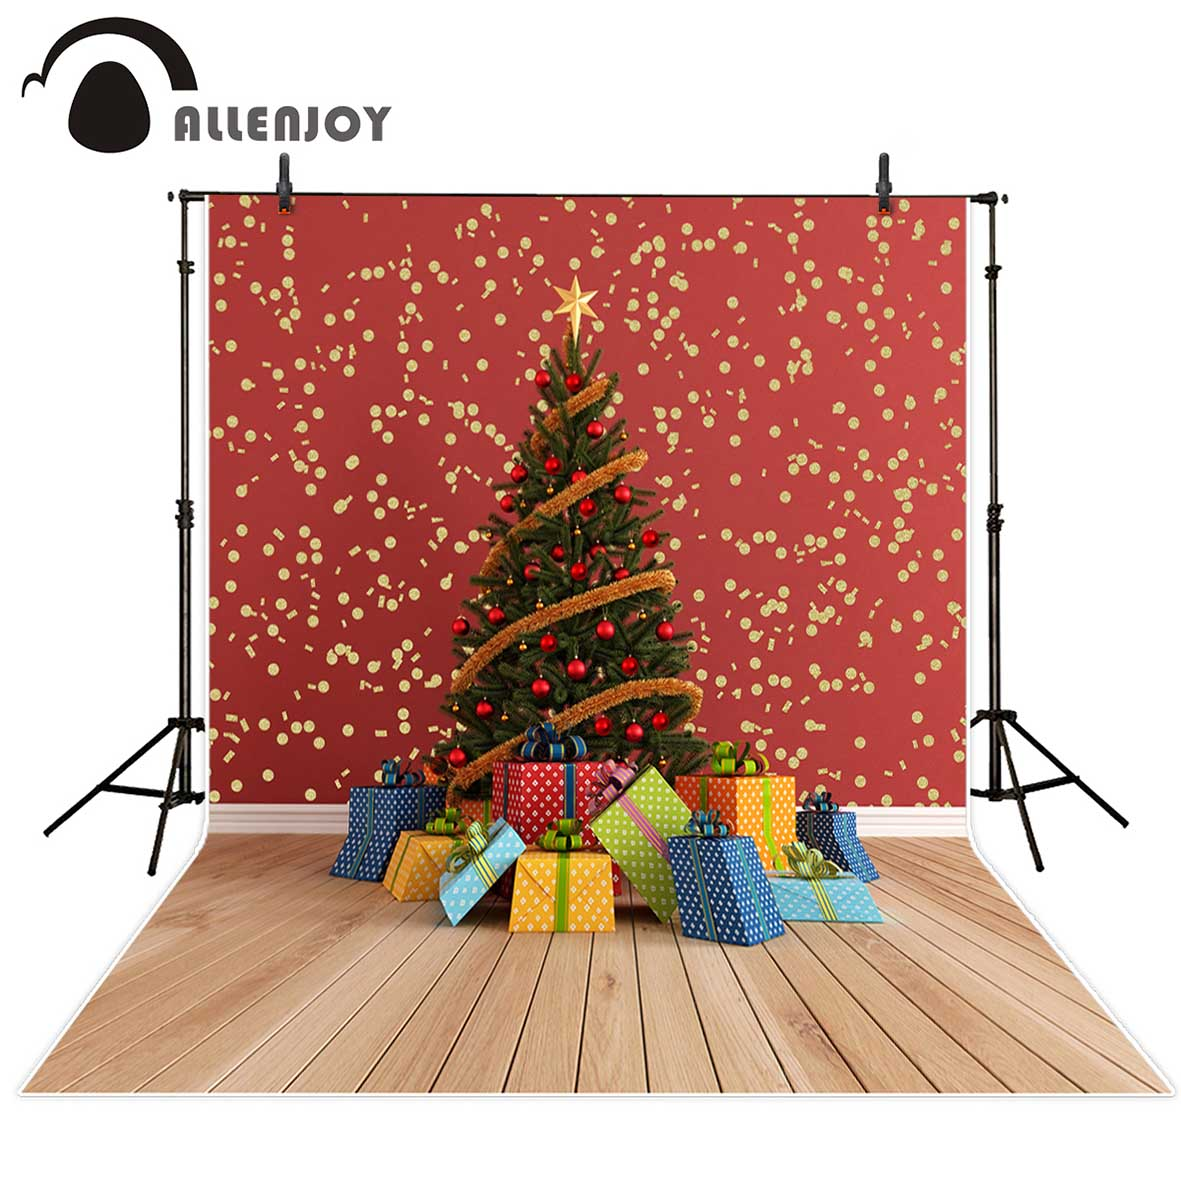 Allenjoy christmas photography backdrops Christmas tree gifts golden shiny dots wall Photo background Photo studio funds allenjoy christmas photography backdrops christmas background gifts white brick wall wooden floor bulbs table for baby for kids